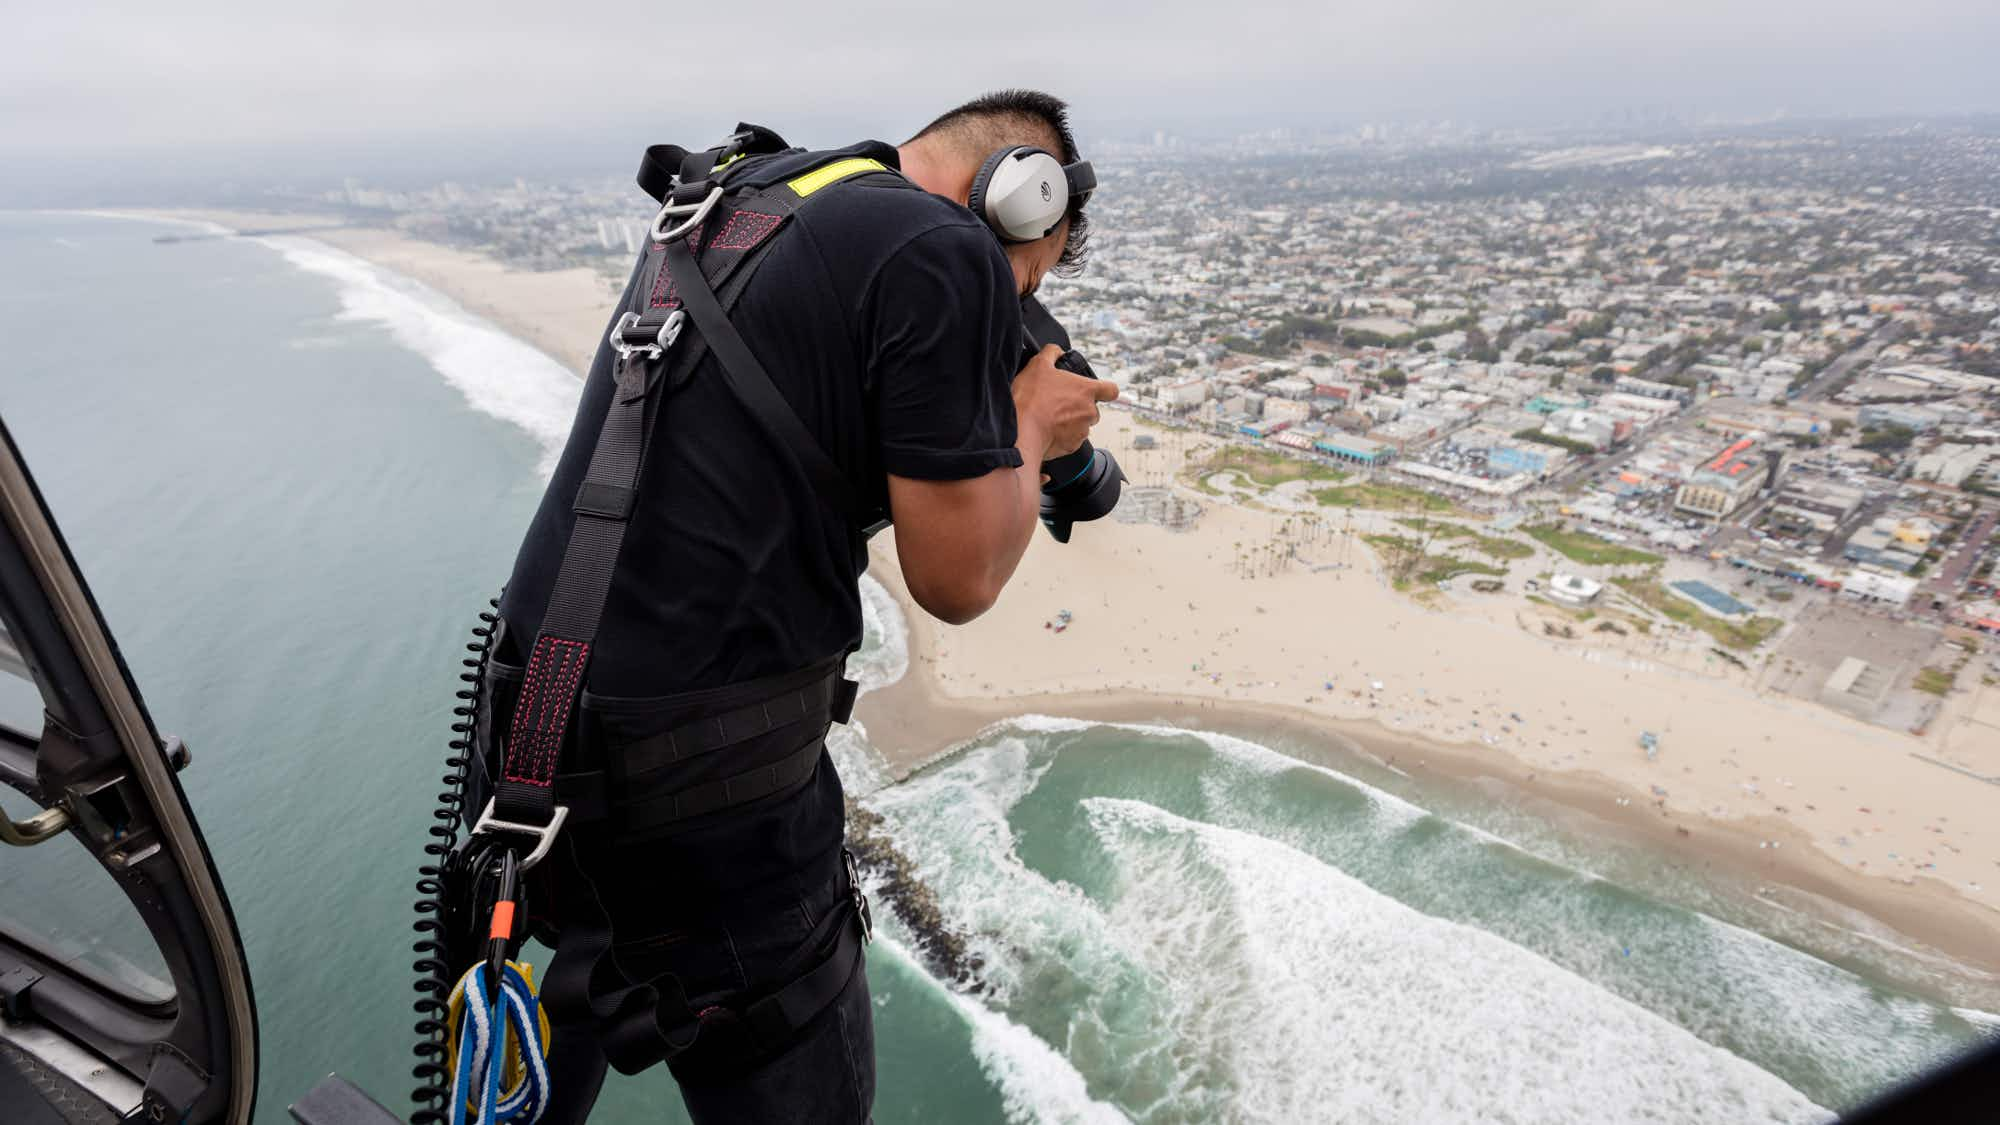 Photographer shares stunning images he takes hanging from a helicopter